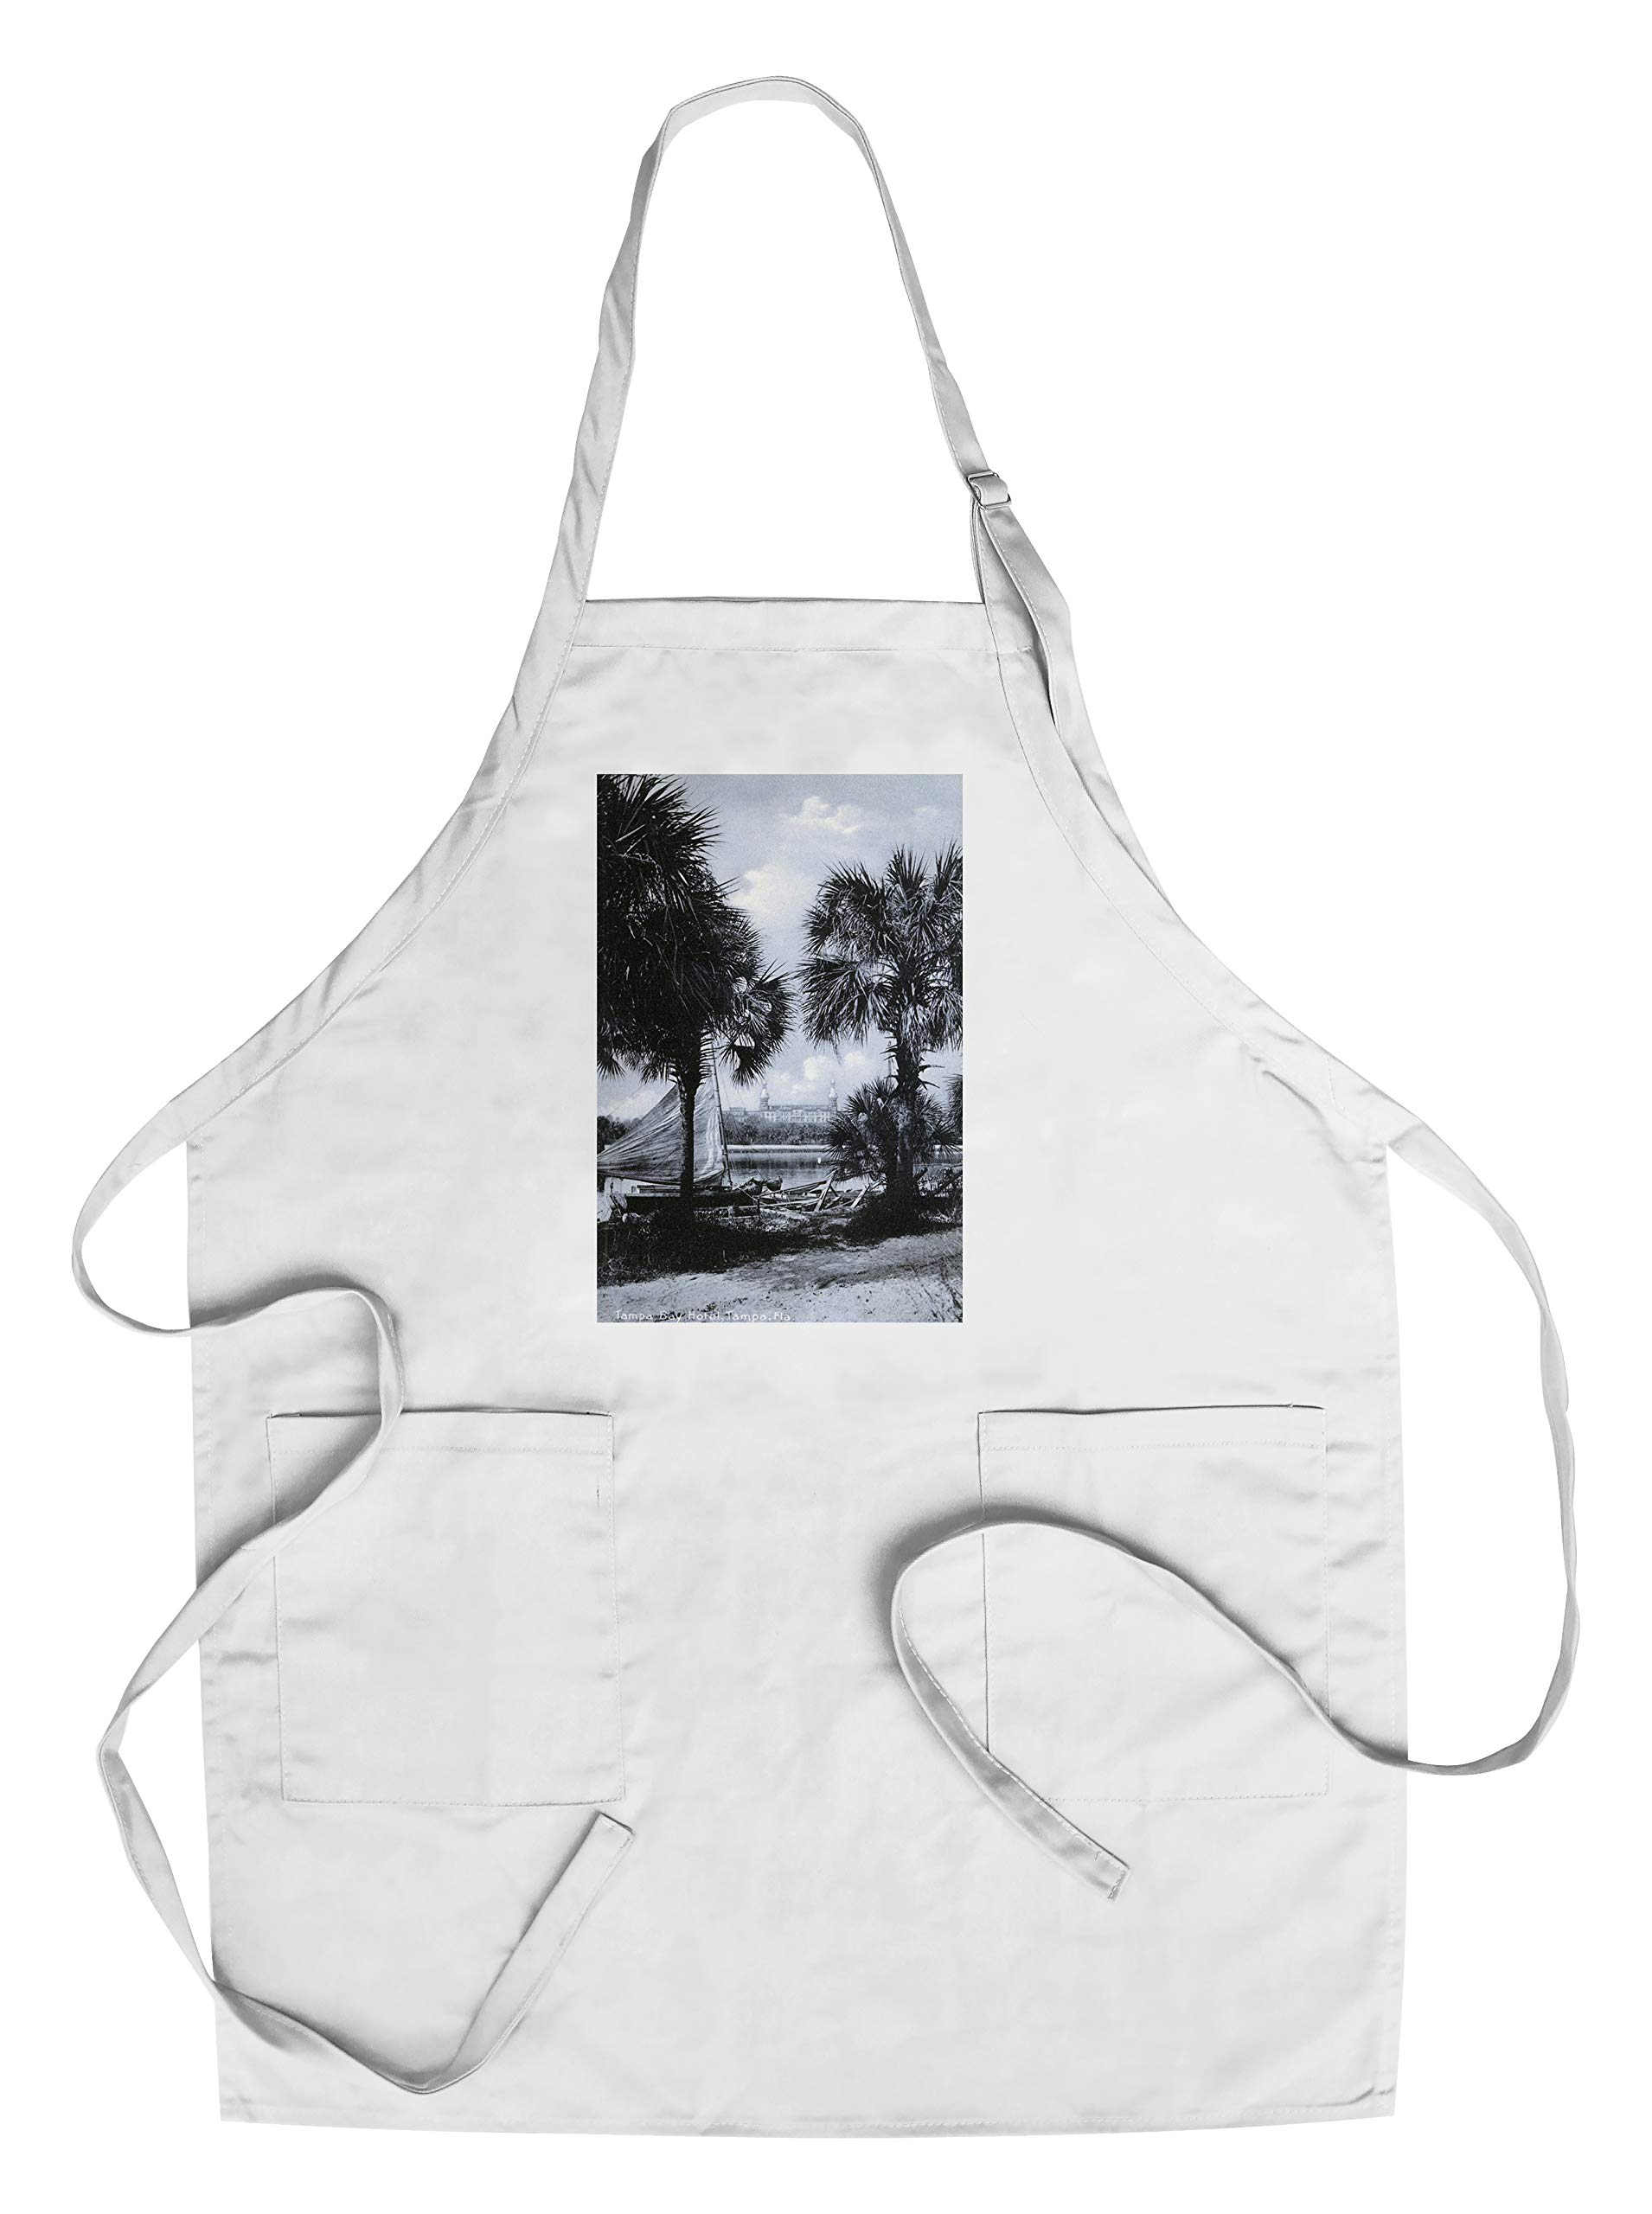 Tampa, Florida - Tampa Bay Hotel in Distance Photo (Cotton/Polyester Chef's Apron)